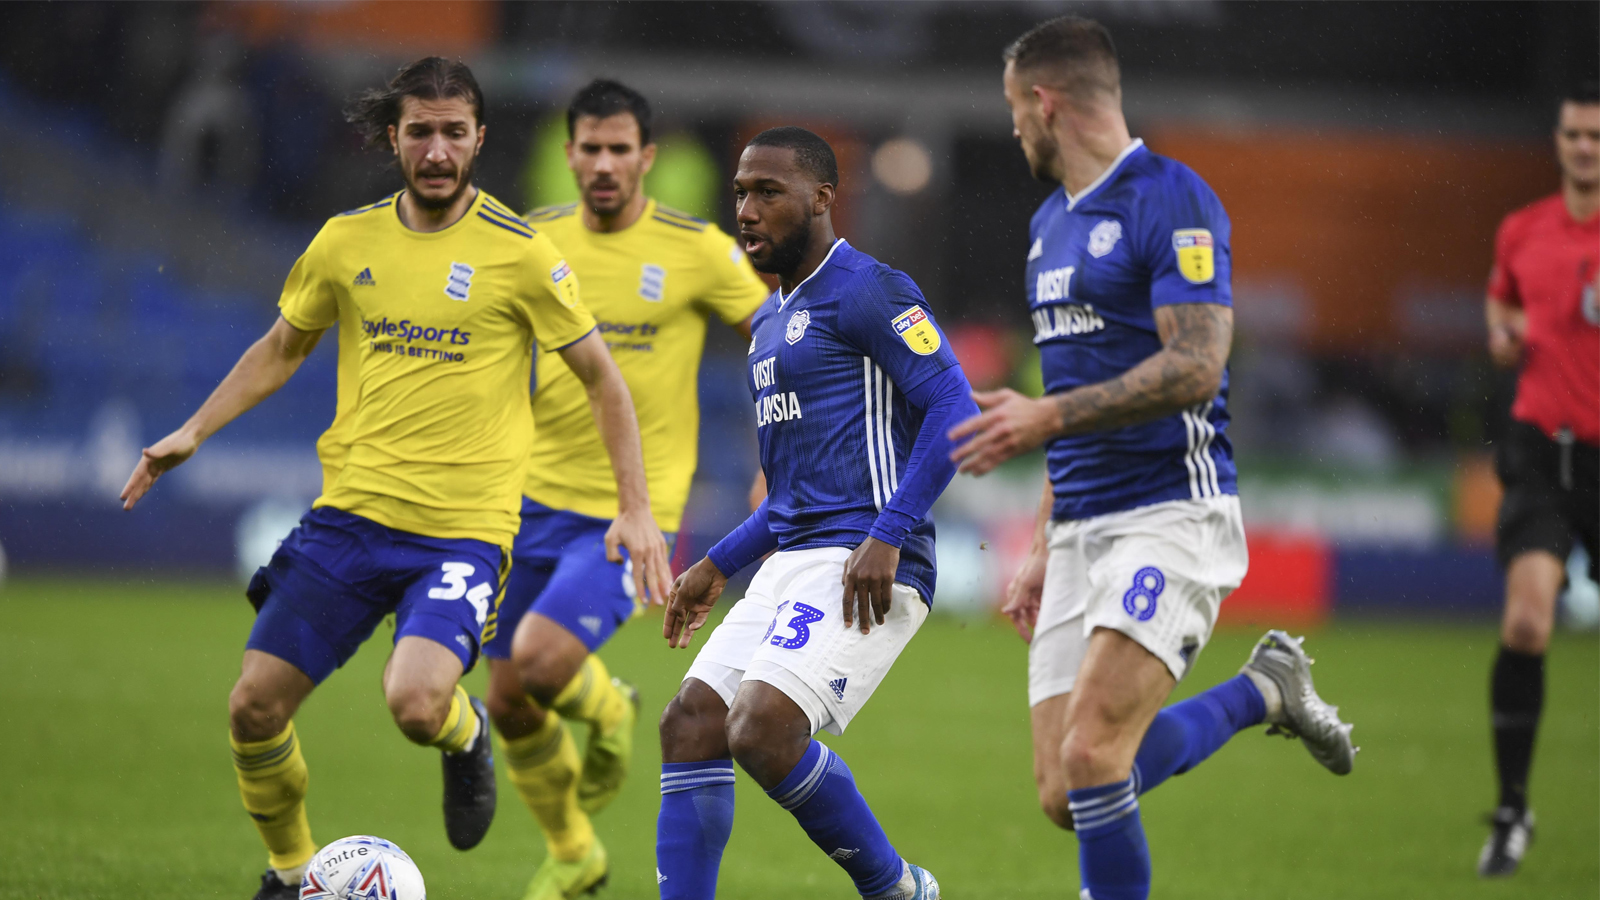 Cardiff City TV pre-Charlton Athletic